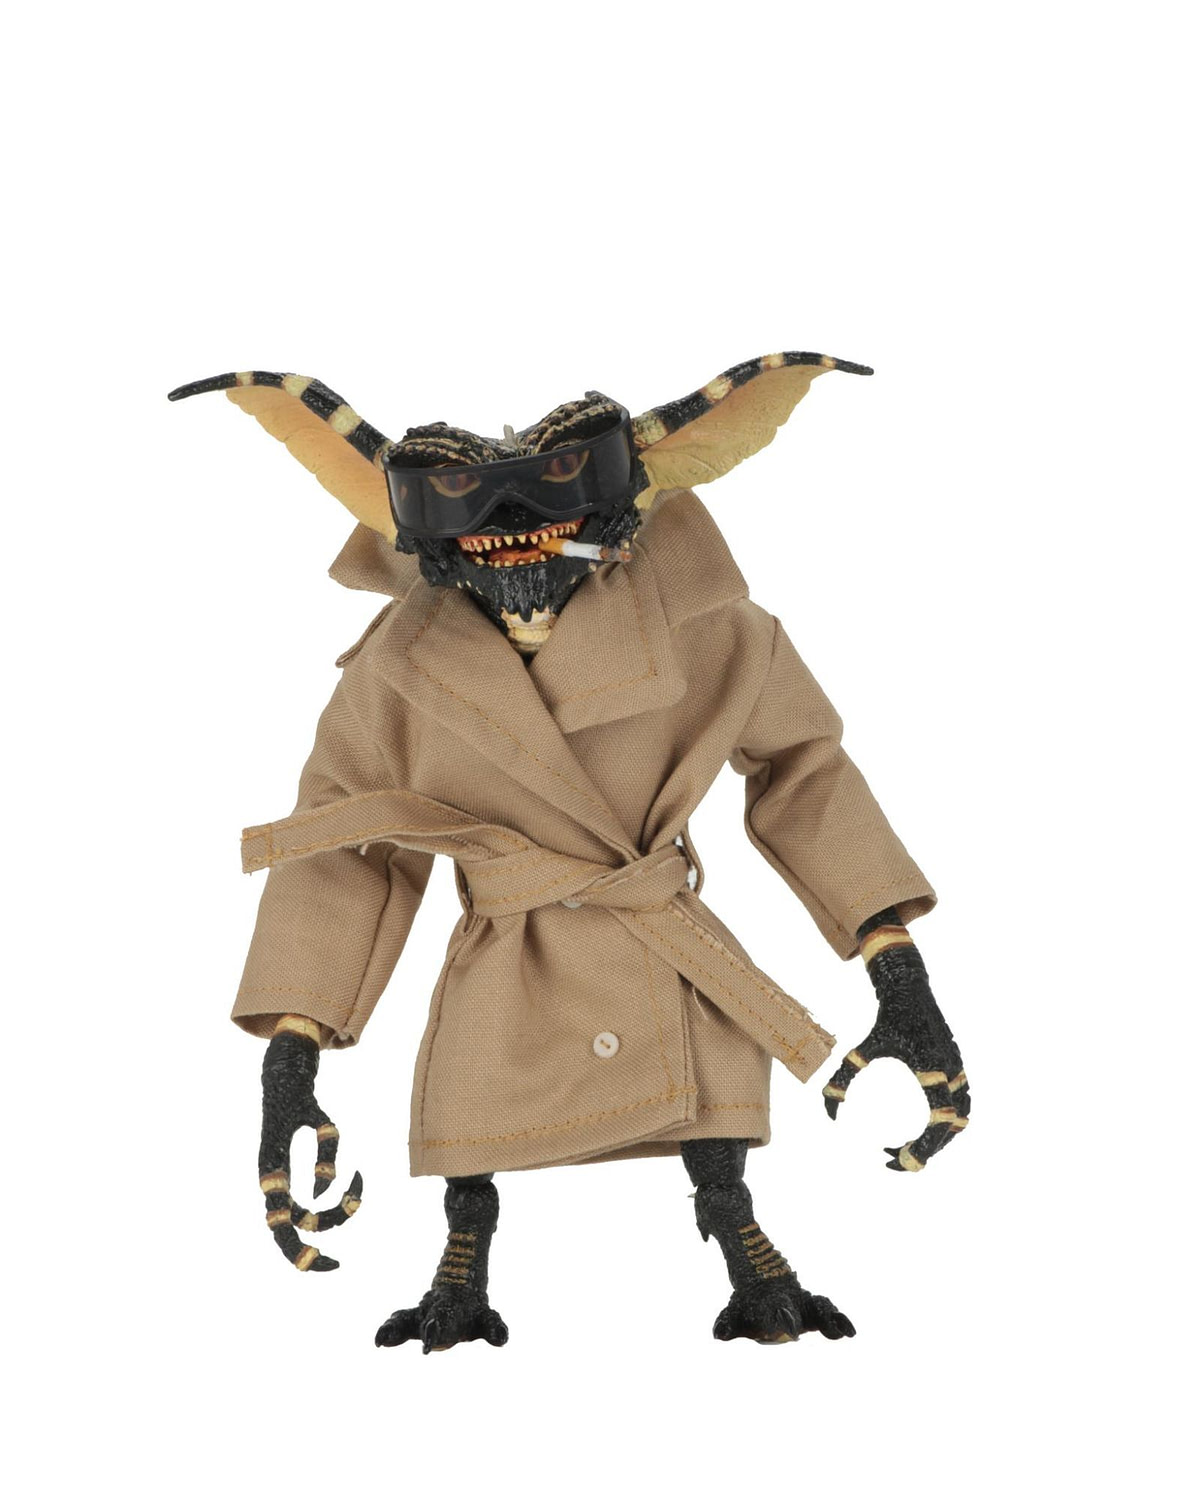 NECA Releases a Flasher with New